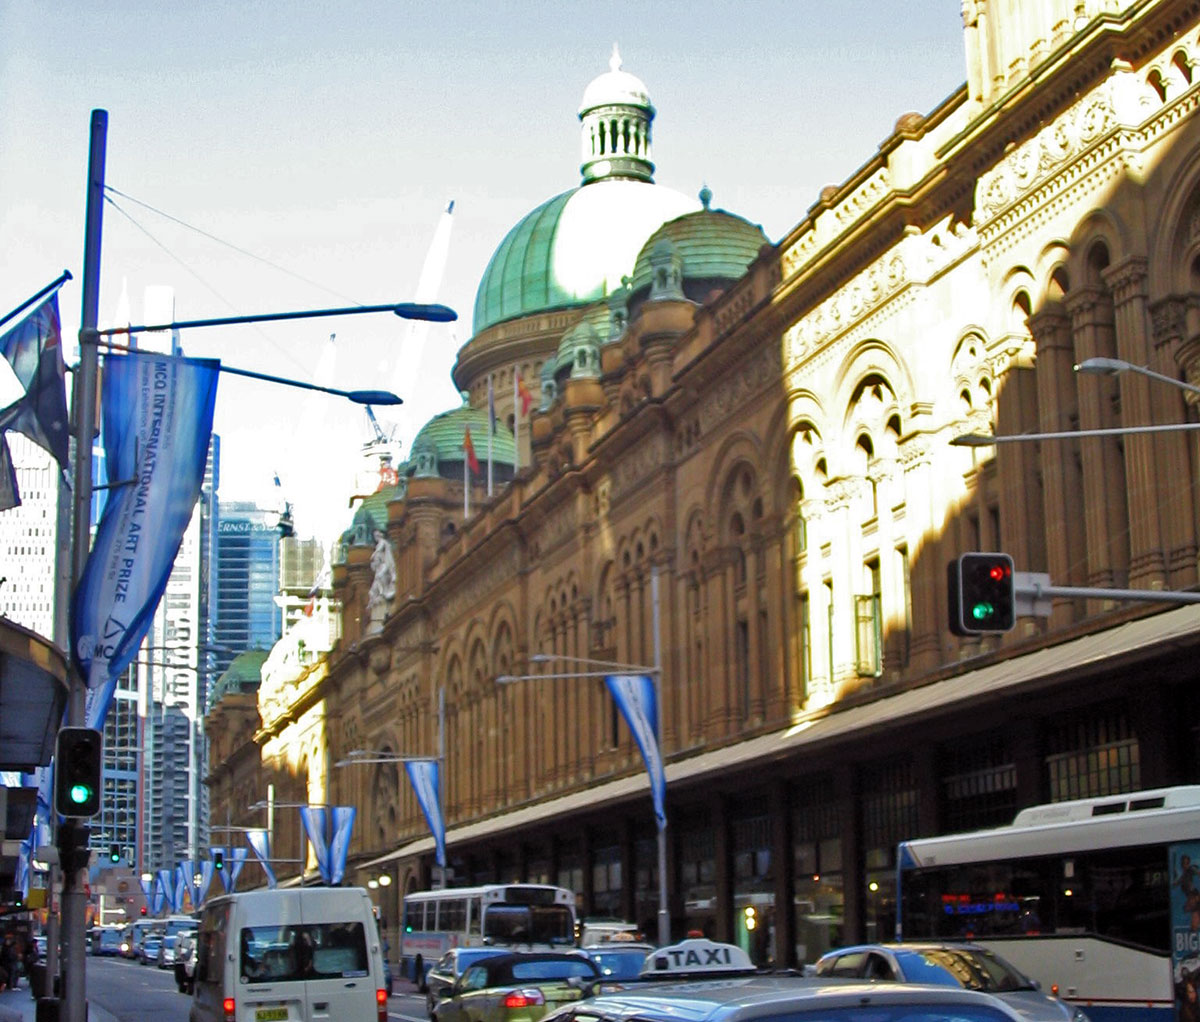 Queens Victoria Building in Sydney